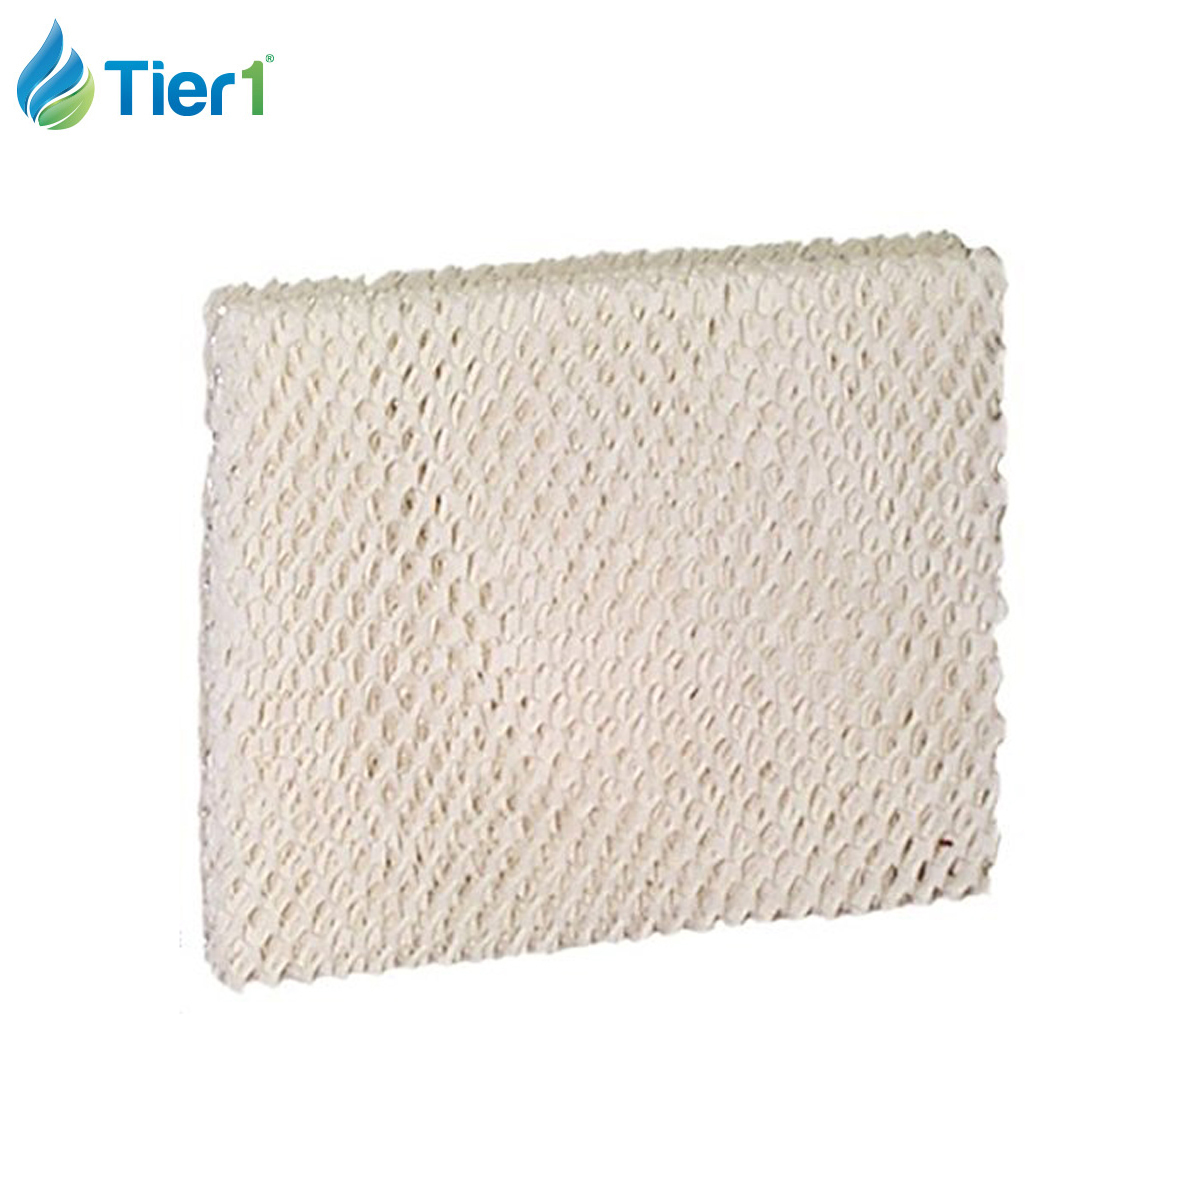 #45 Aprilaire Comparable Humidifier Replacement Filter by Tier1 TIER1-HMF1320